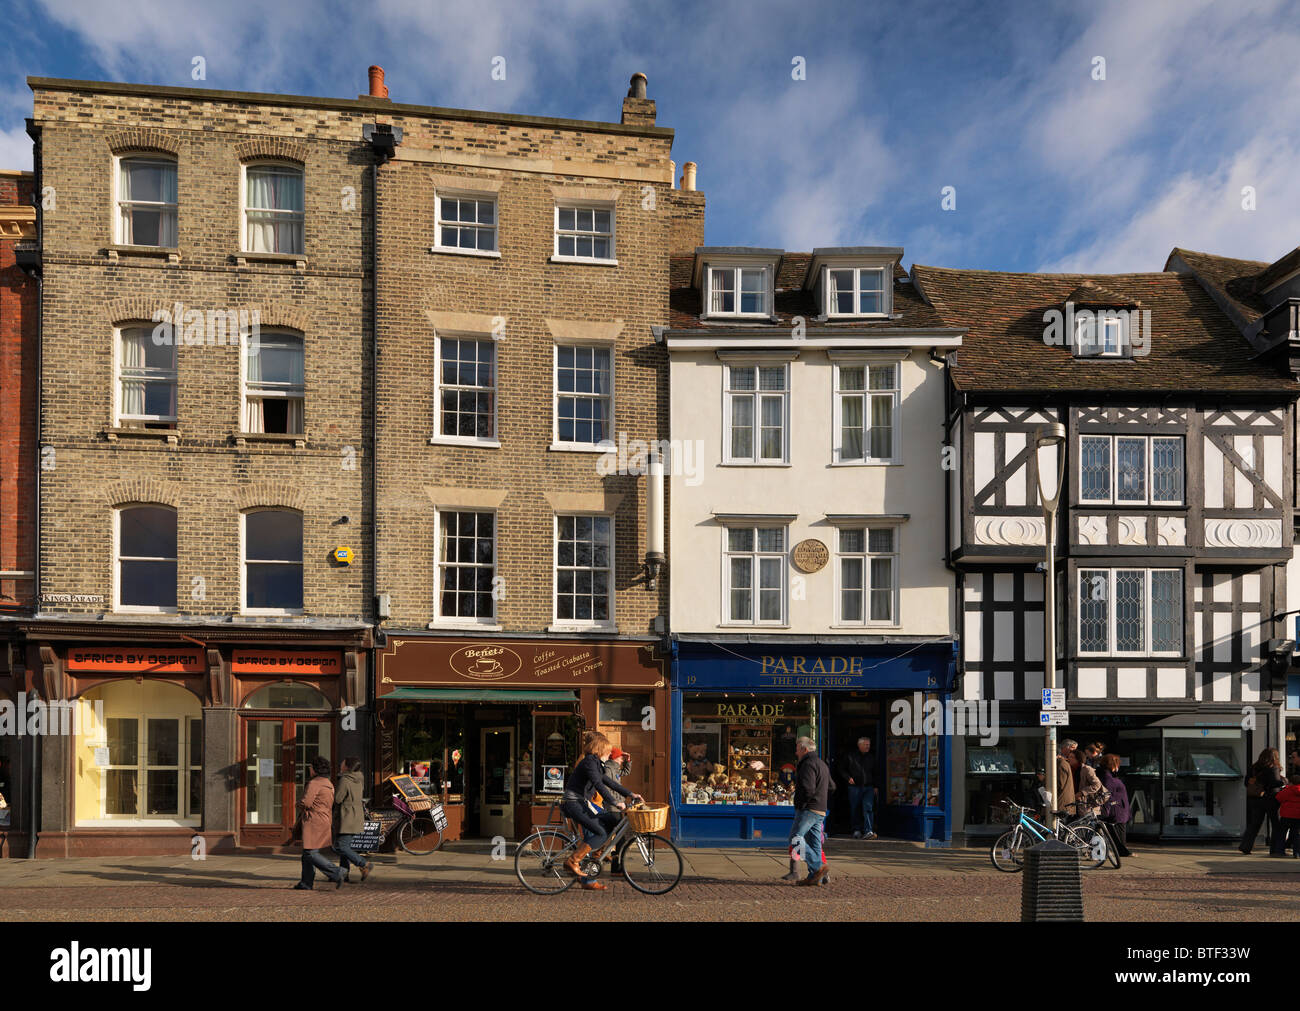 A group of shops and cafes in Kings Parade Cambridge - Stock Image